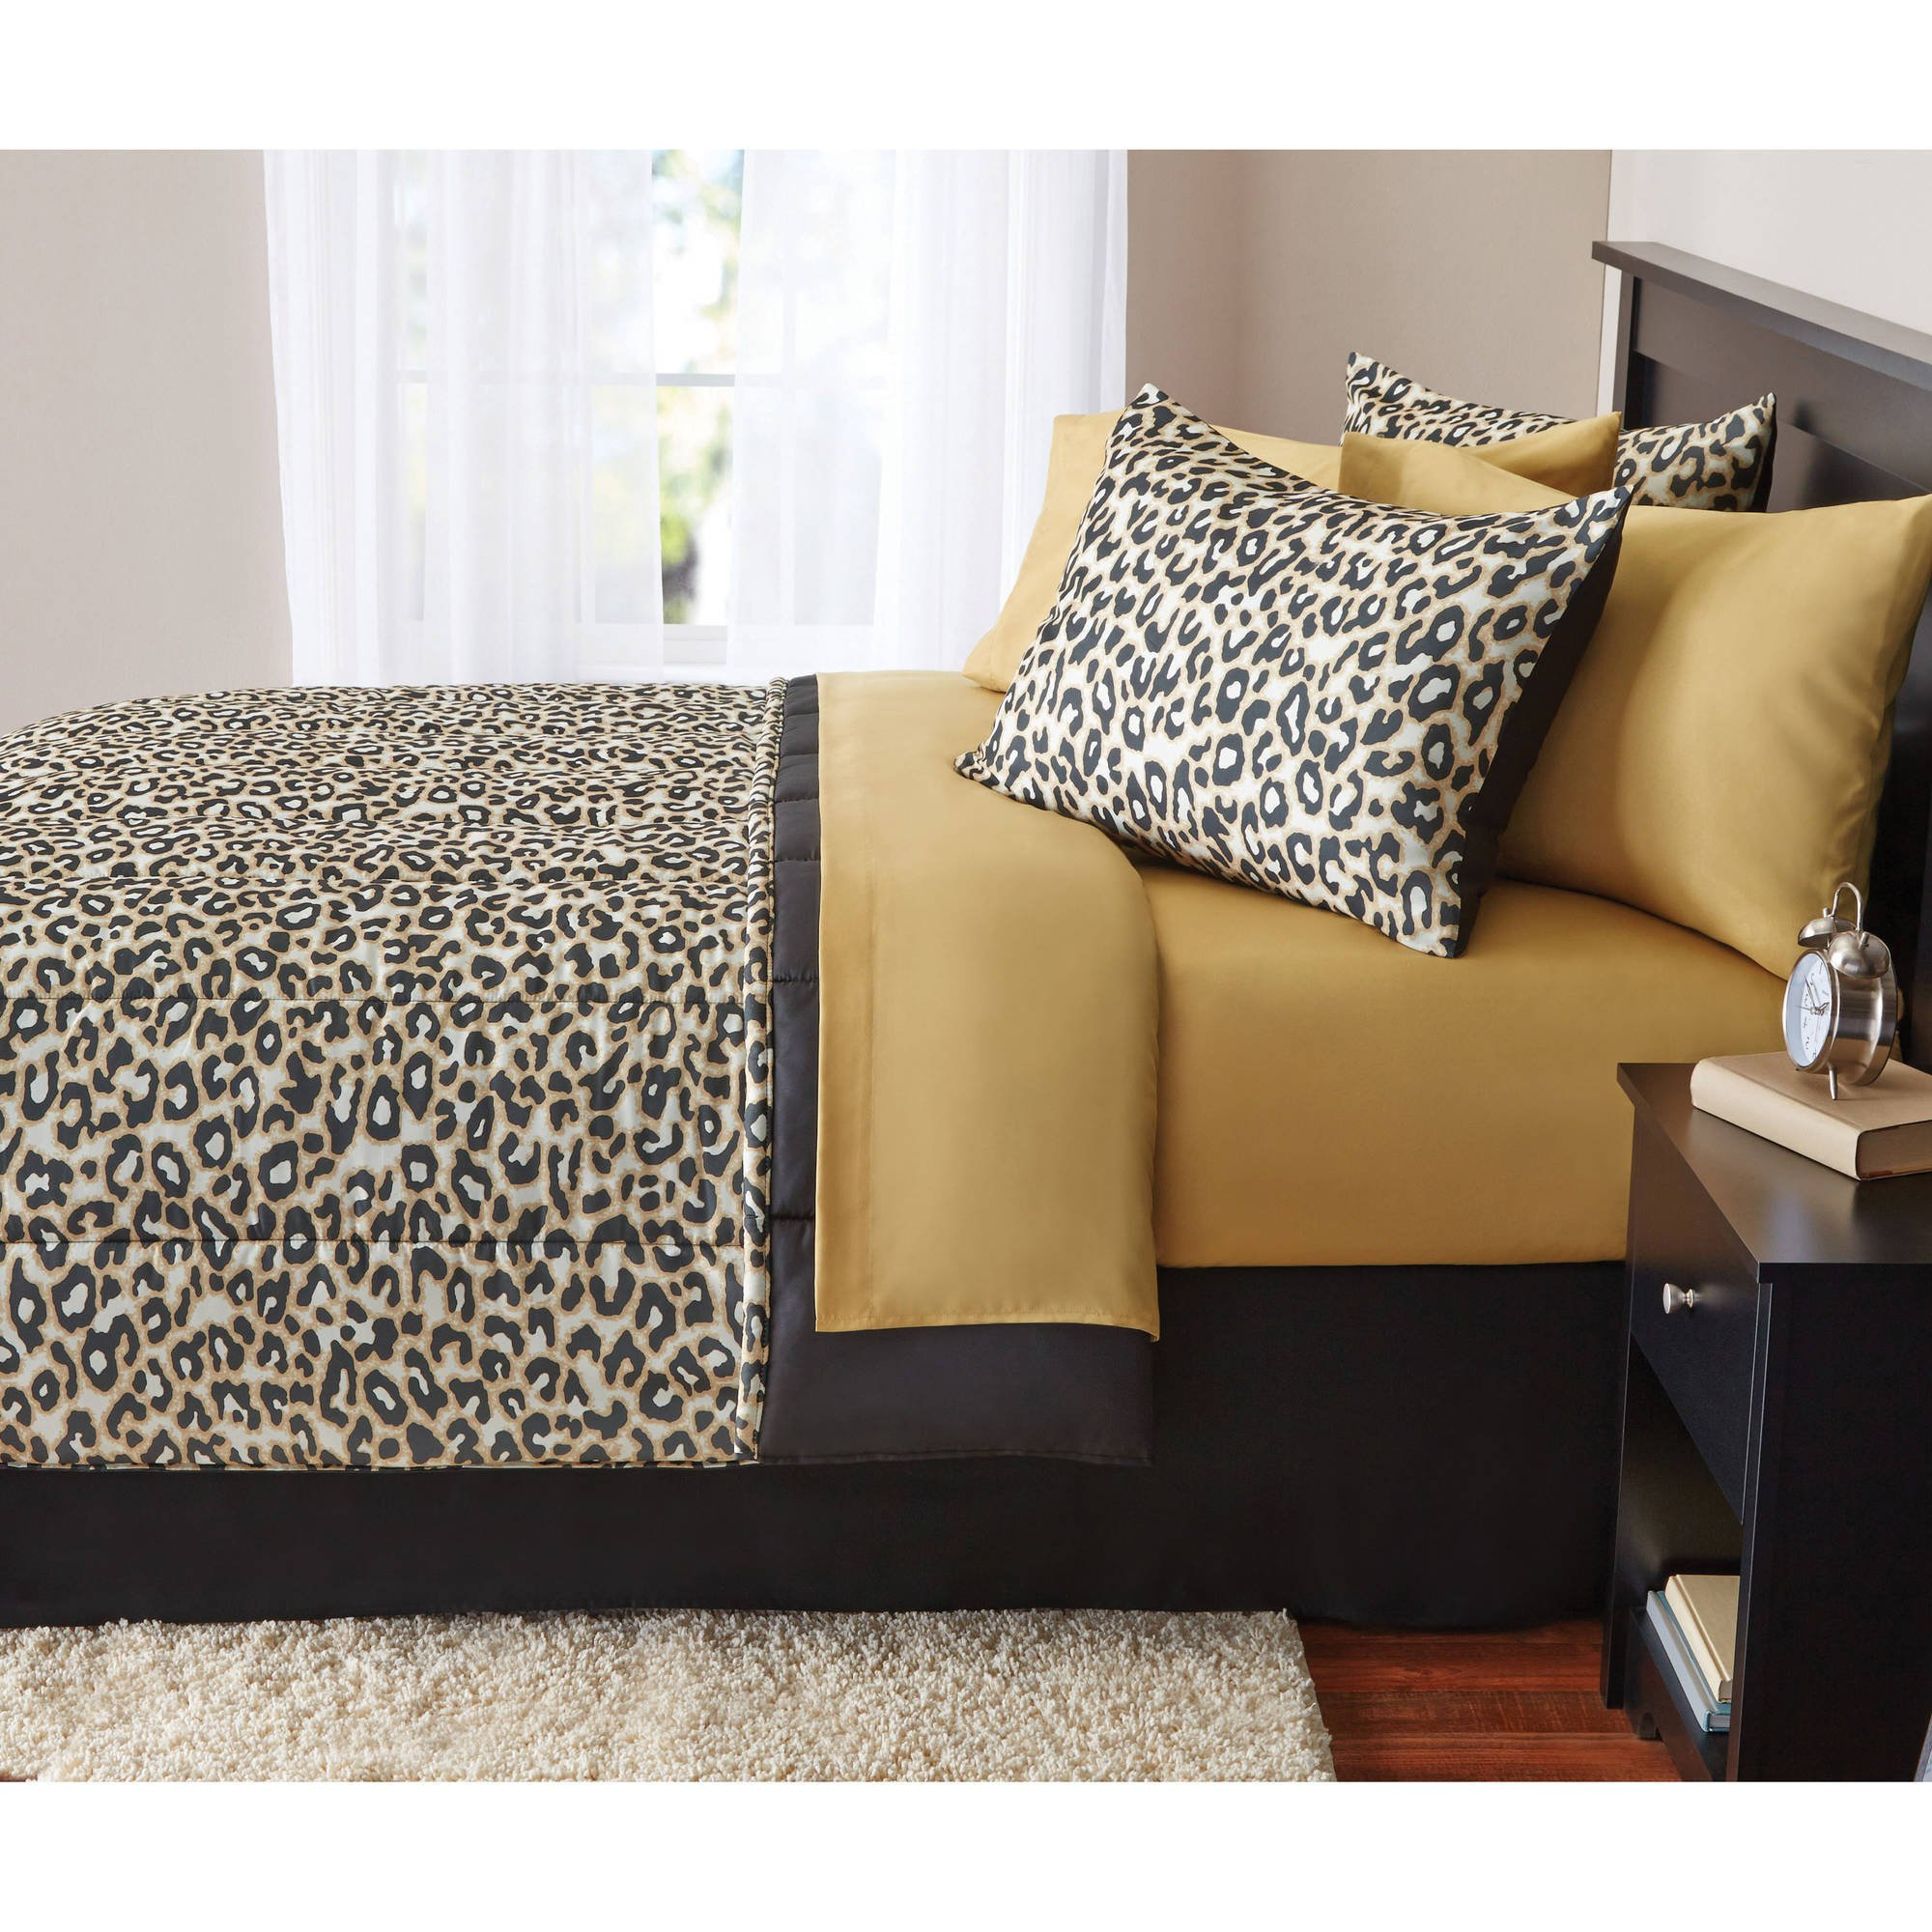 8 Piece Kids Brown Cheetah Pattern Comforter Full Set, Elegant All Over Exotic Jungle Zoo African Safari Wild Animals Featuring Tiger, Leopard Print, Luxurious Bedroom Bedding, Abstract Color